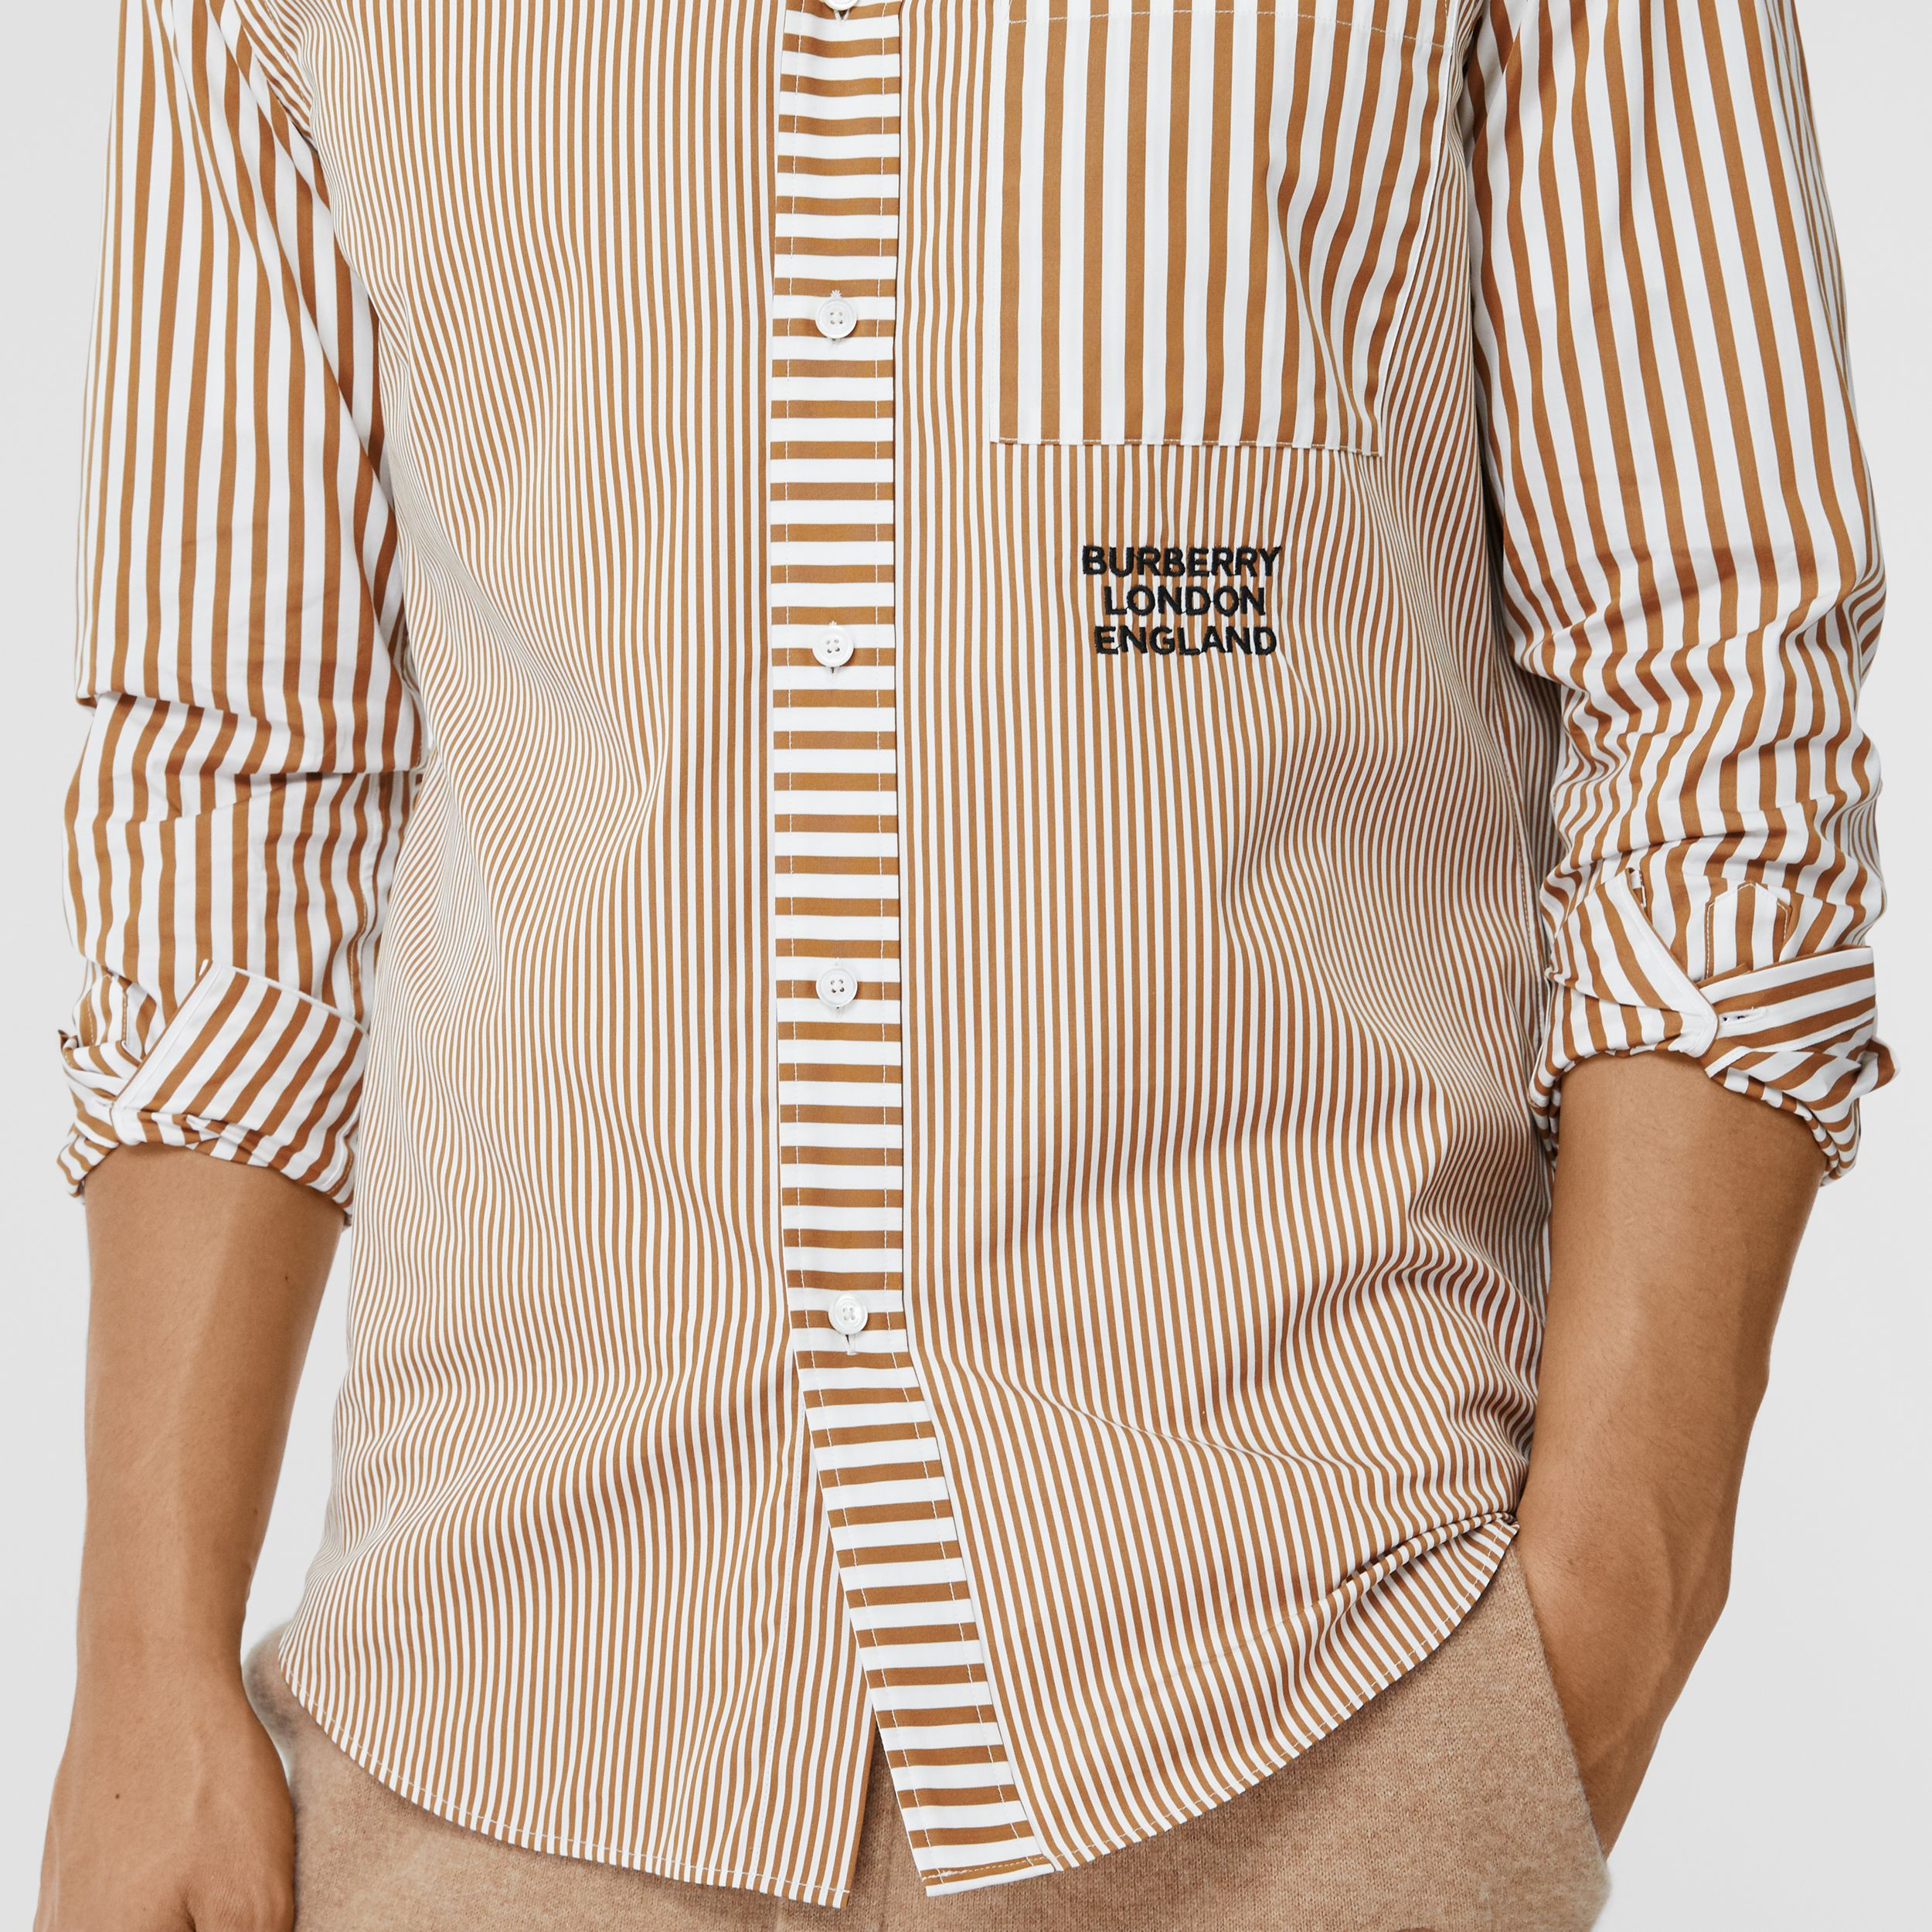 Embroidered Logo Patchwork Striped Cotton Shirt in Camel - Men | Burberry - 2